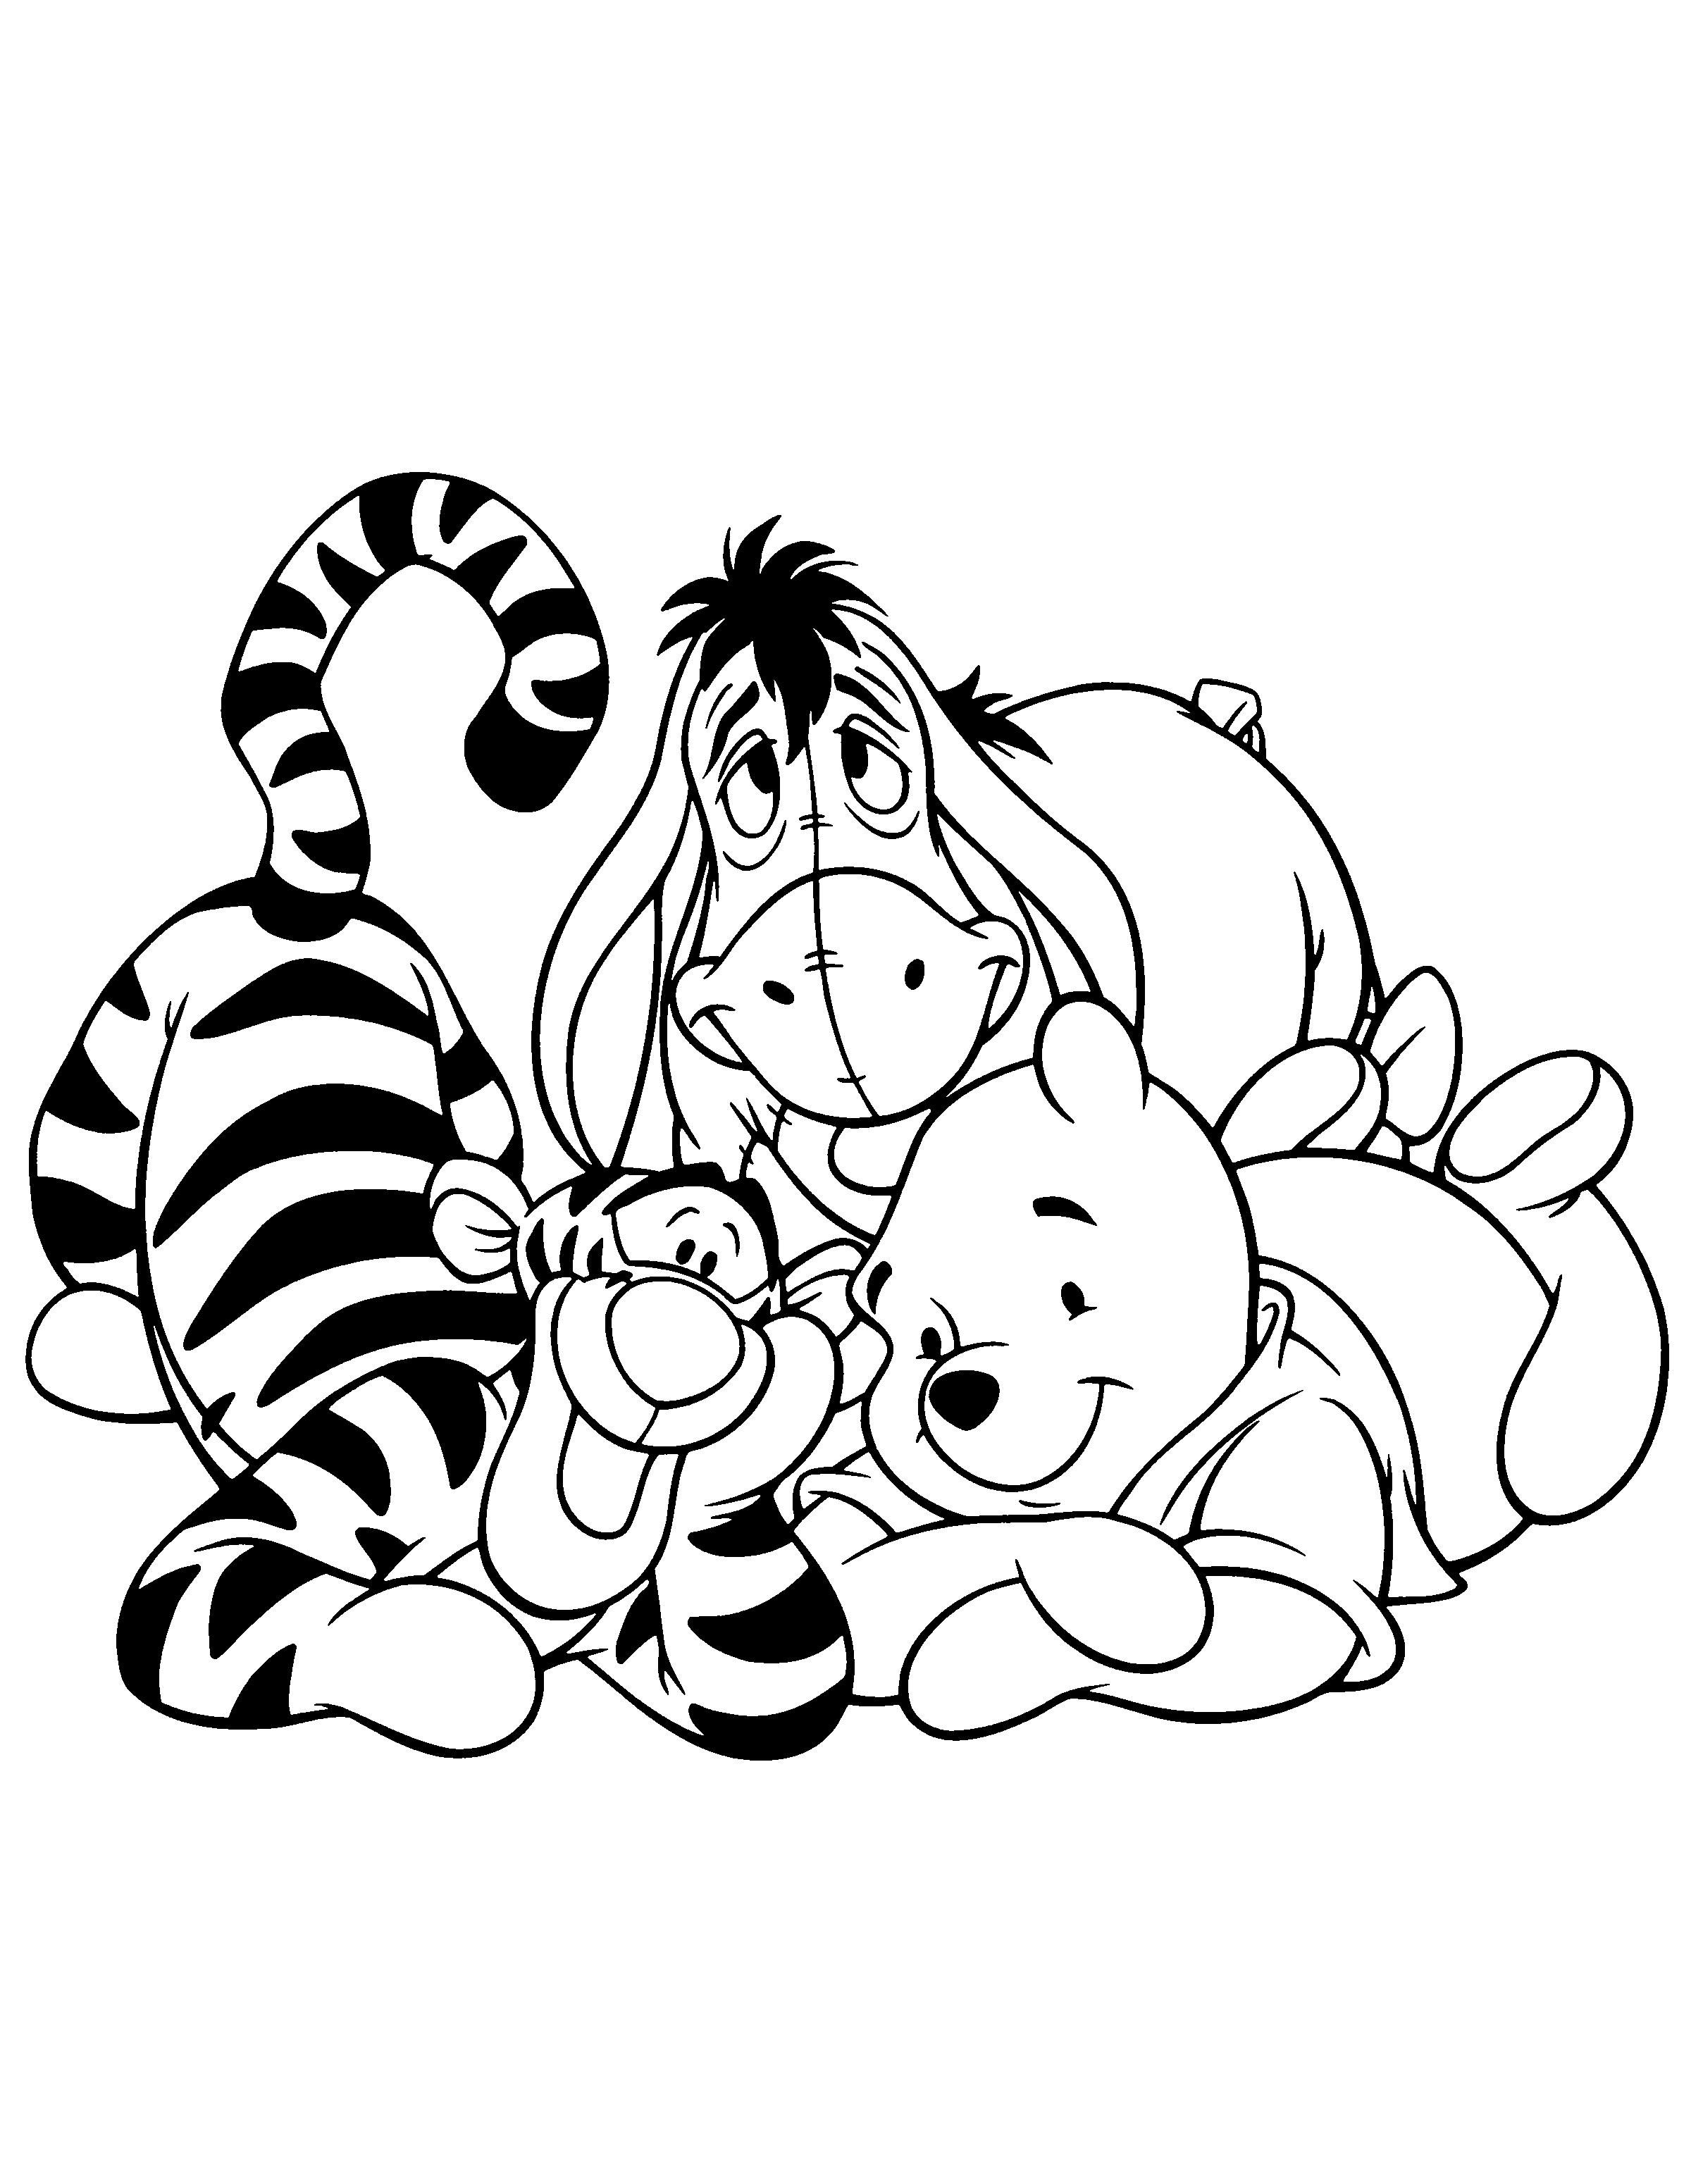 5 Disney Kleurplaten Coloring Pages in 5  Bear coloring pages